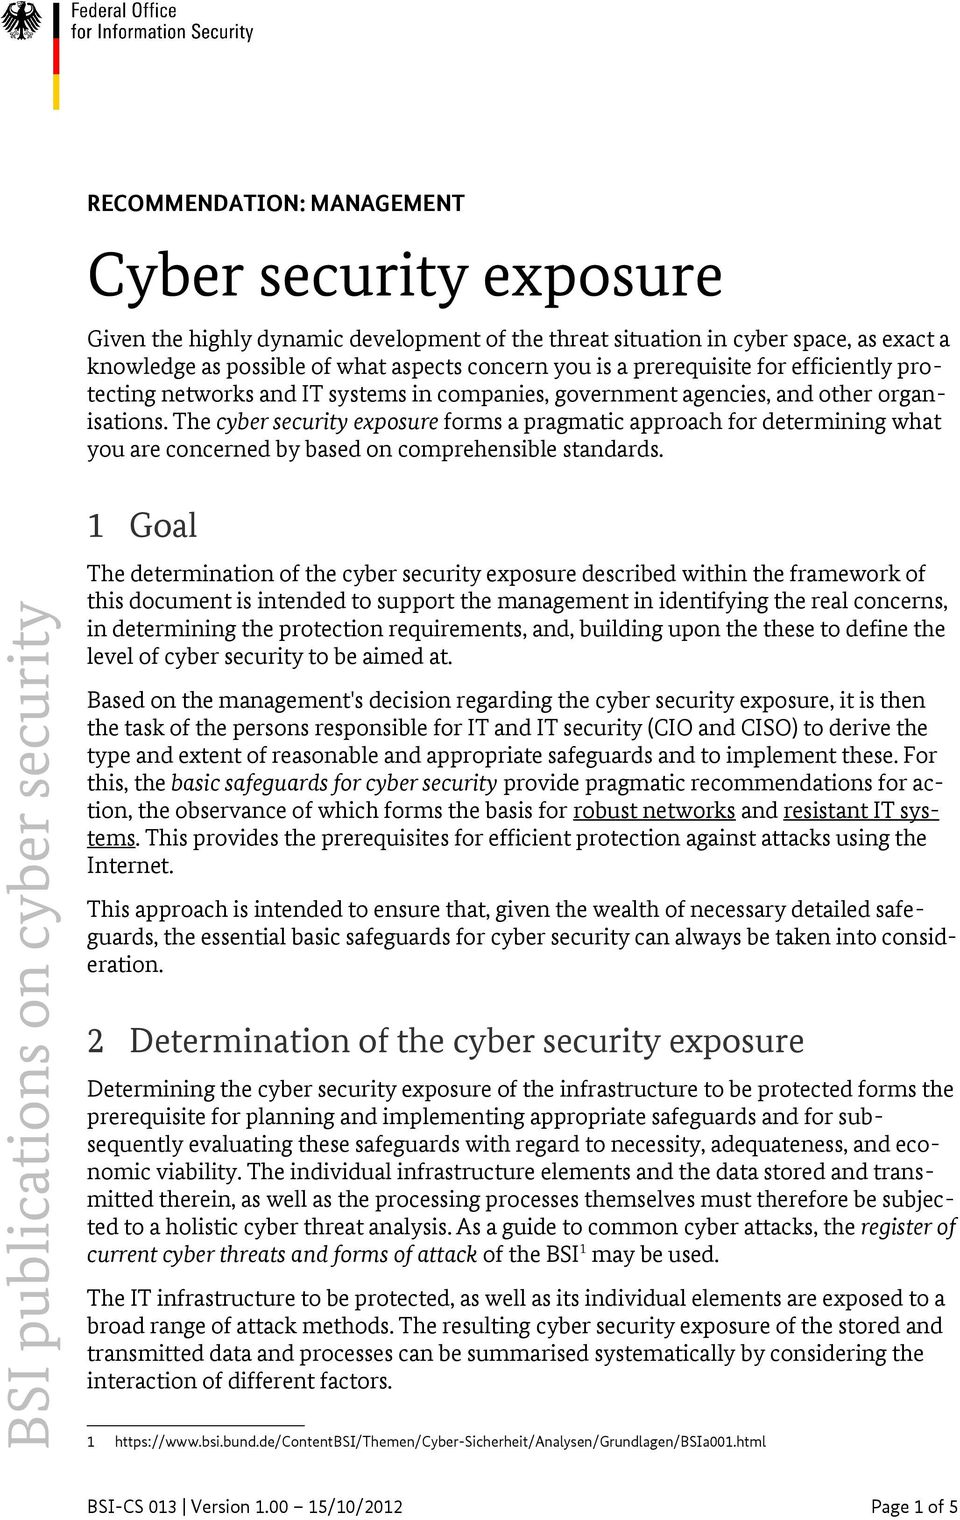 The cyber security exposure forms a pragmatic approach for determining what you are concerned by based on comprehensible standards.